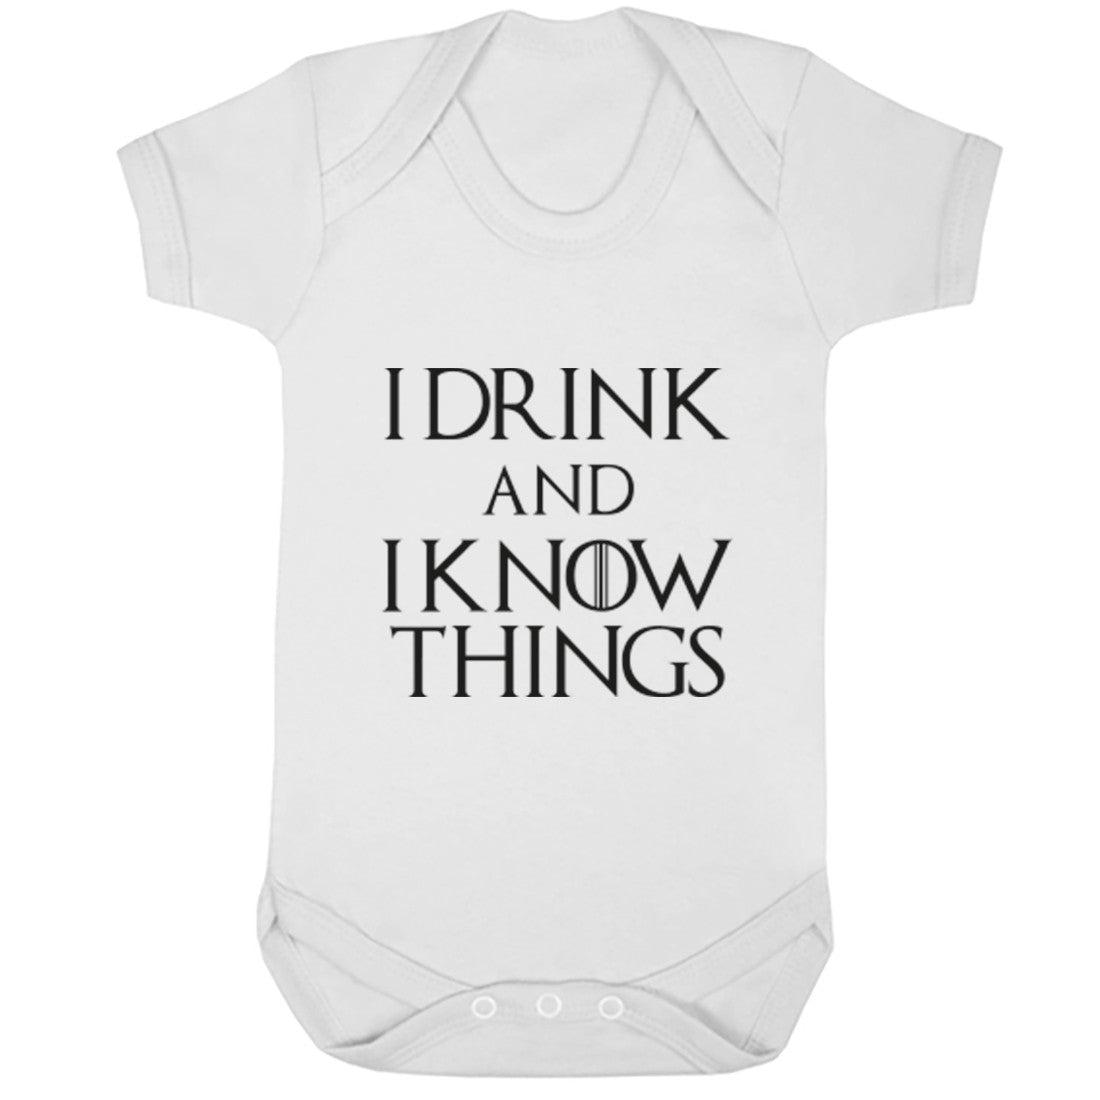 I Drink And I Know Things GOT Inspired Baby Vest K1076 - Illustrated Identity Ltd.